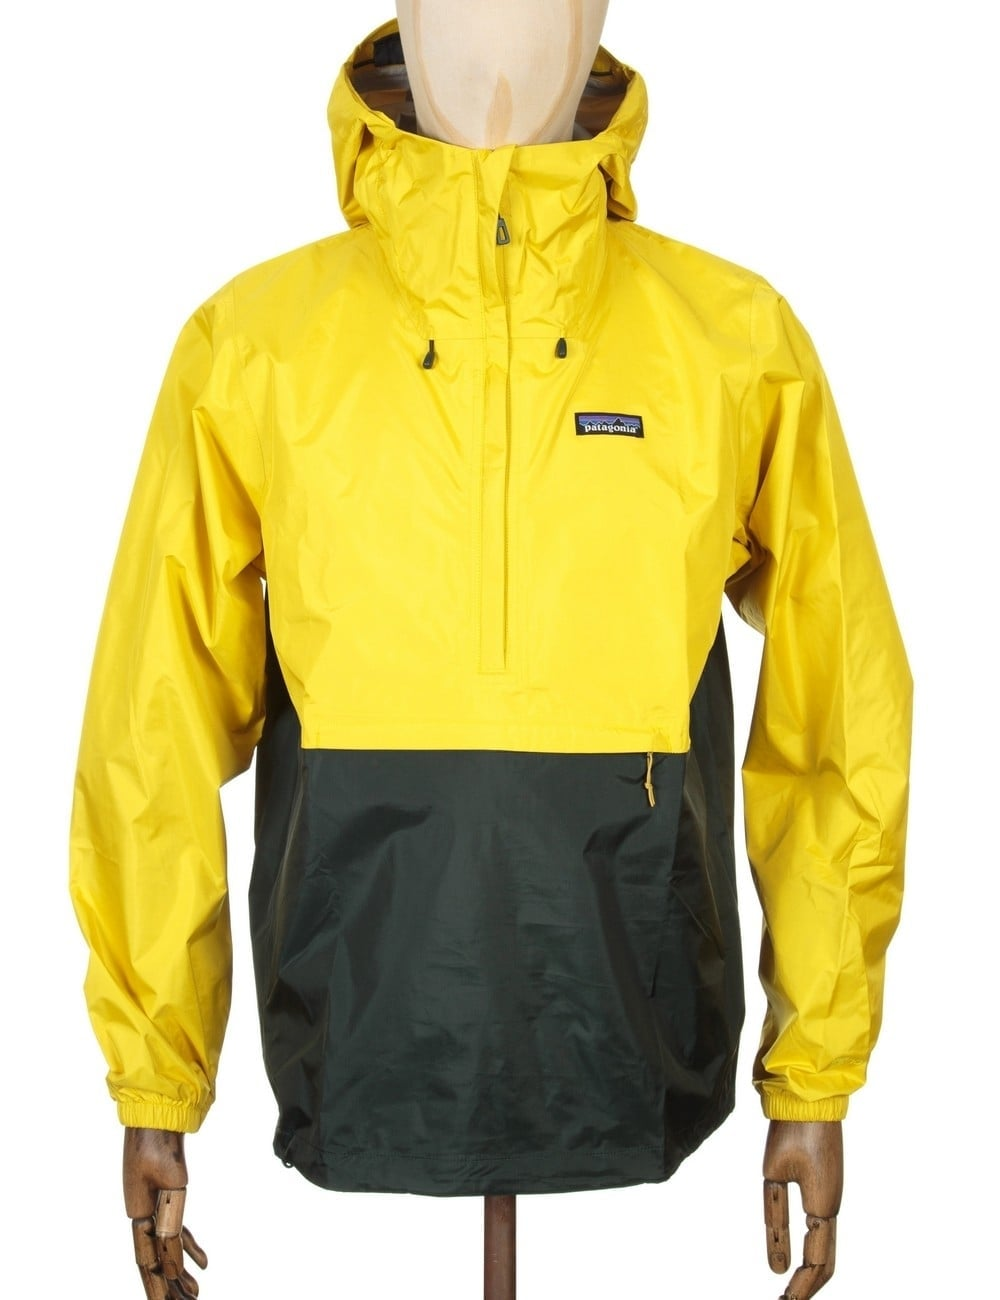 Patagonia Torrentshell Pullover Jacket - Yosemite Yellow ...